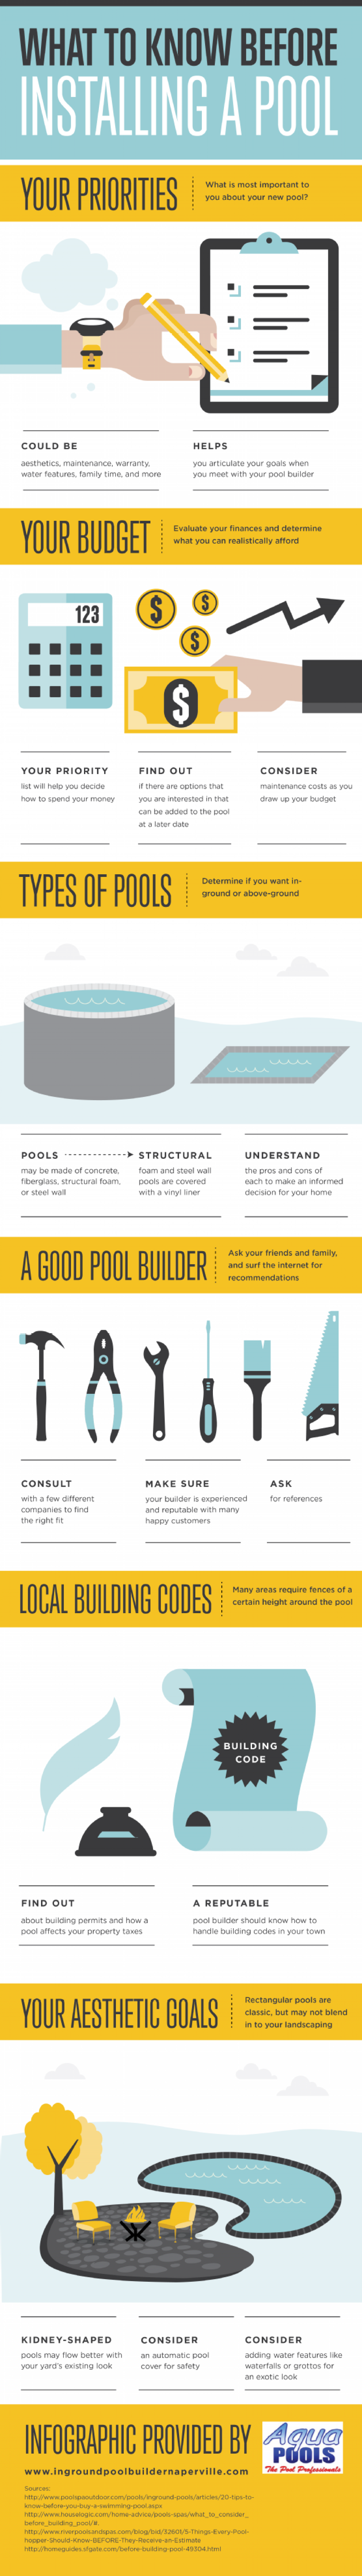 What to Know Before Installing a Pool Infographic